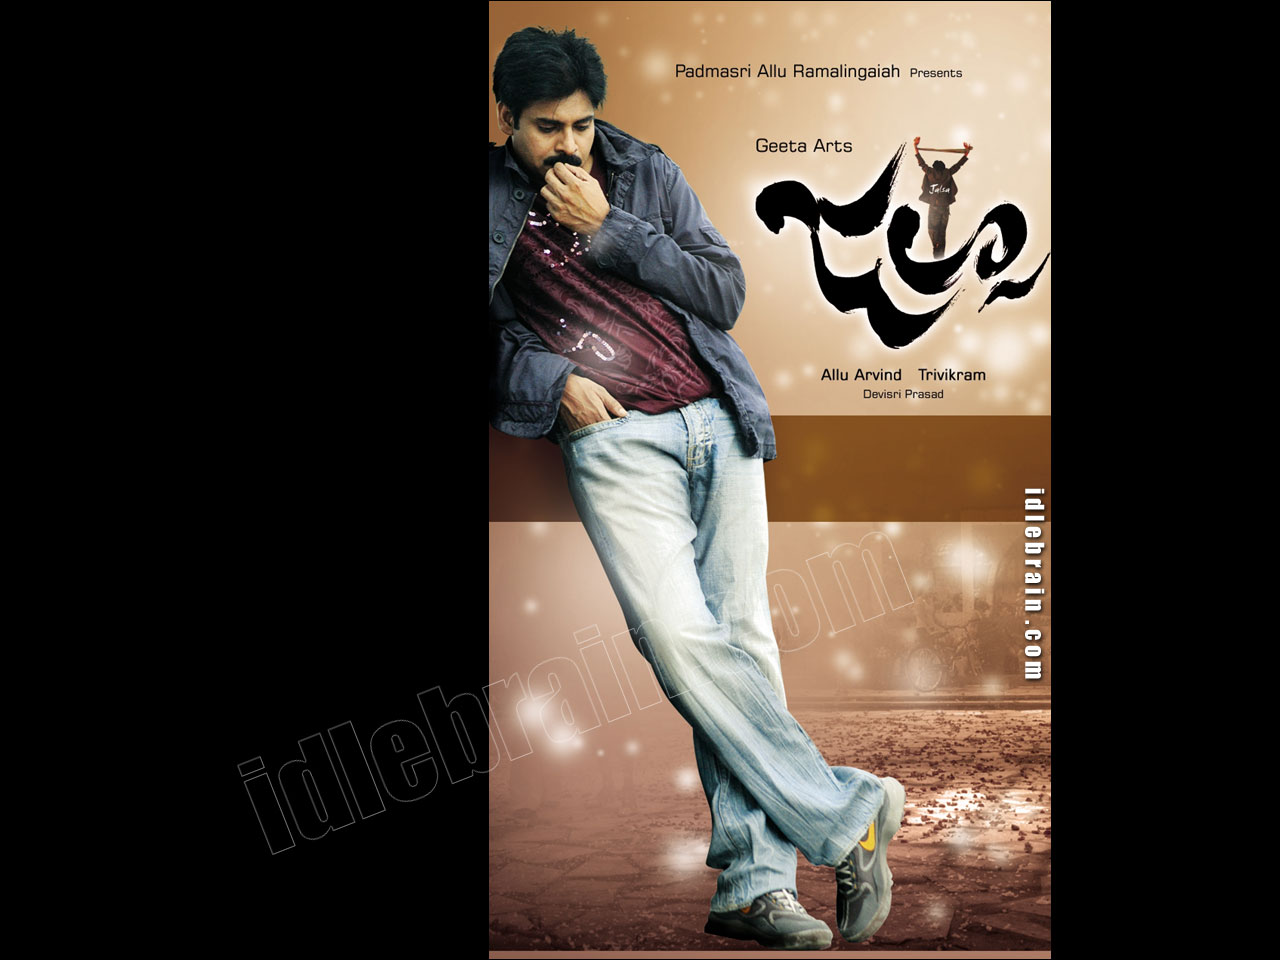 Jalsa - Telugu film wallpapers - Telugu cinema